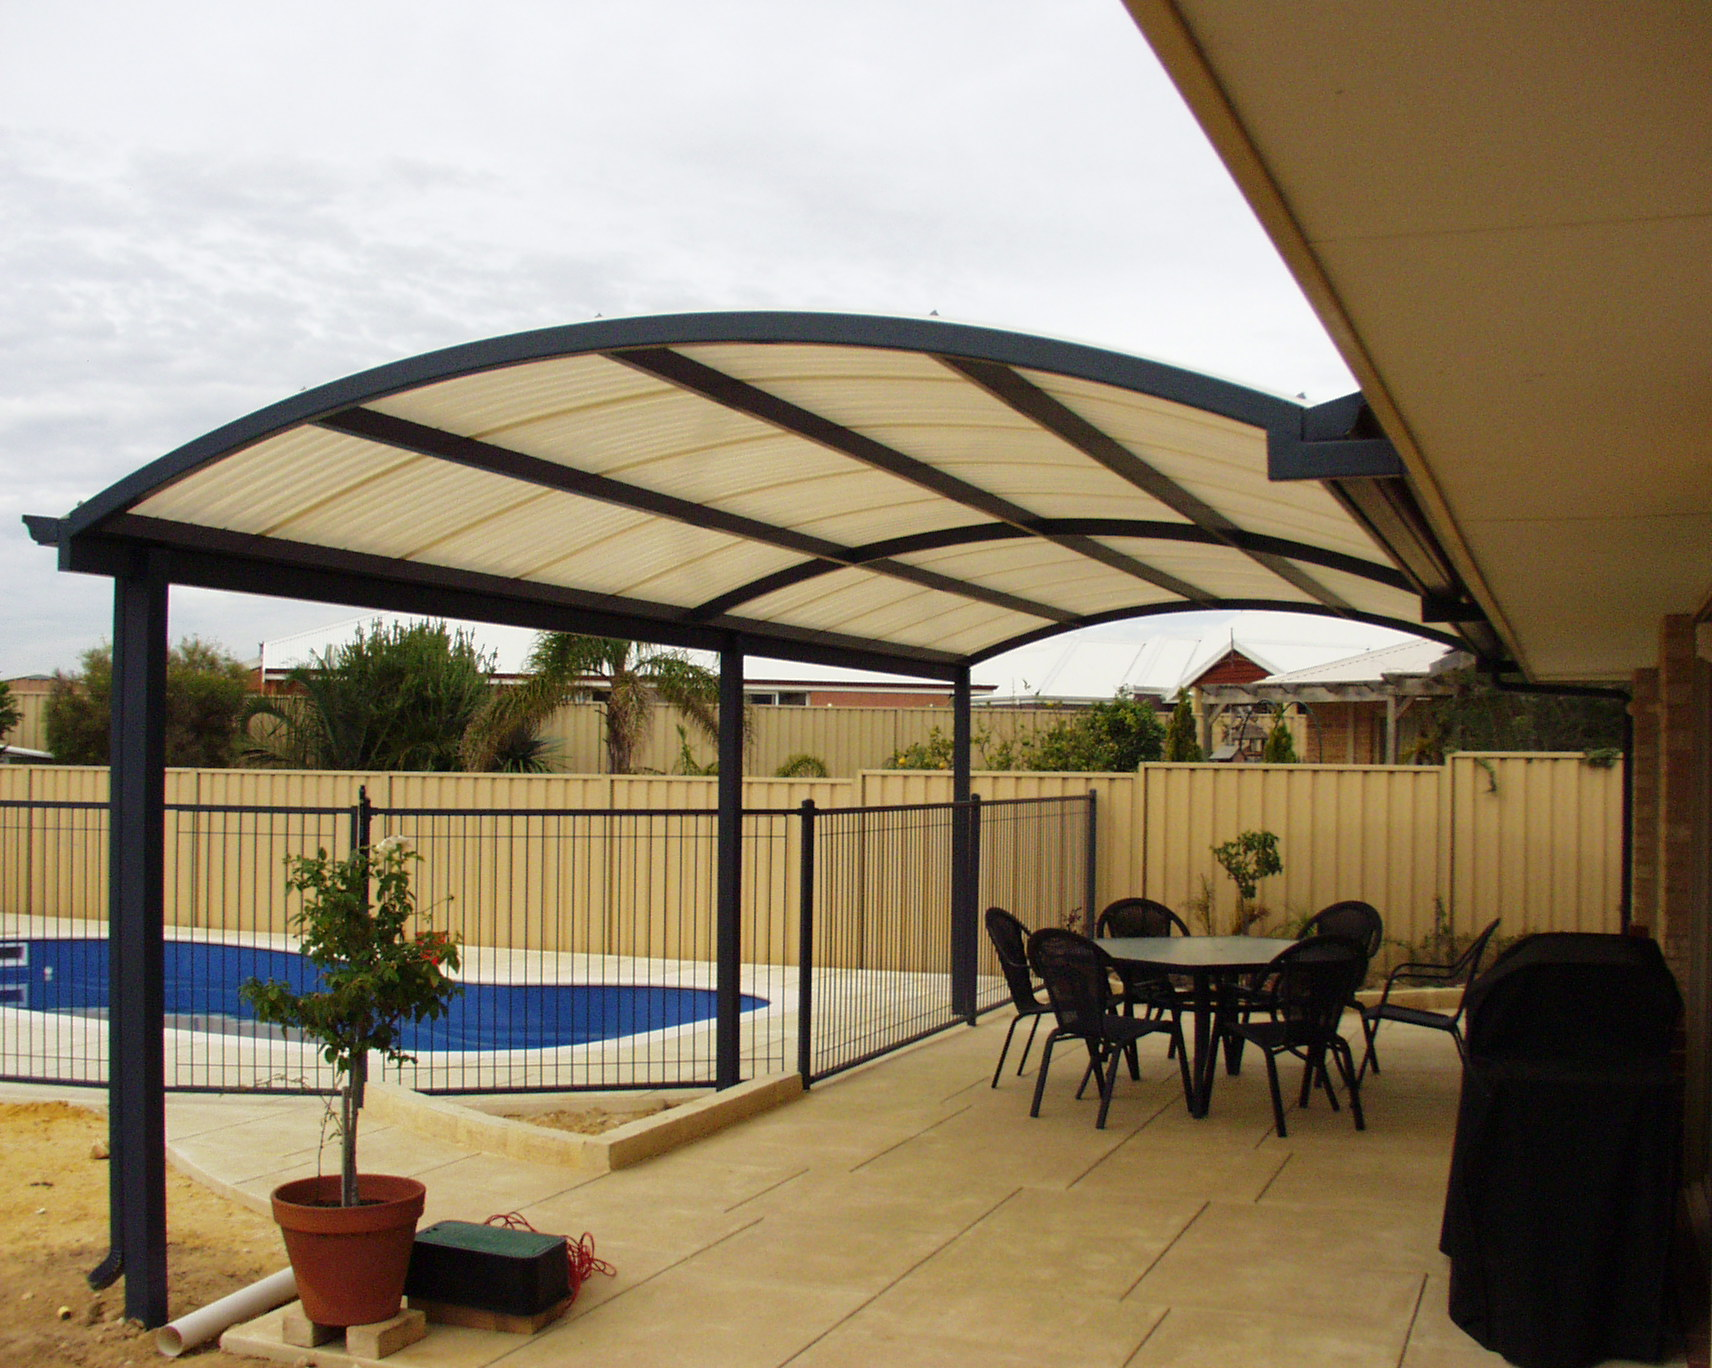 Backyard Patio Covers: From Usefulness To Style - HomesFeed on Patio Covers Ideas  id=18768